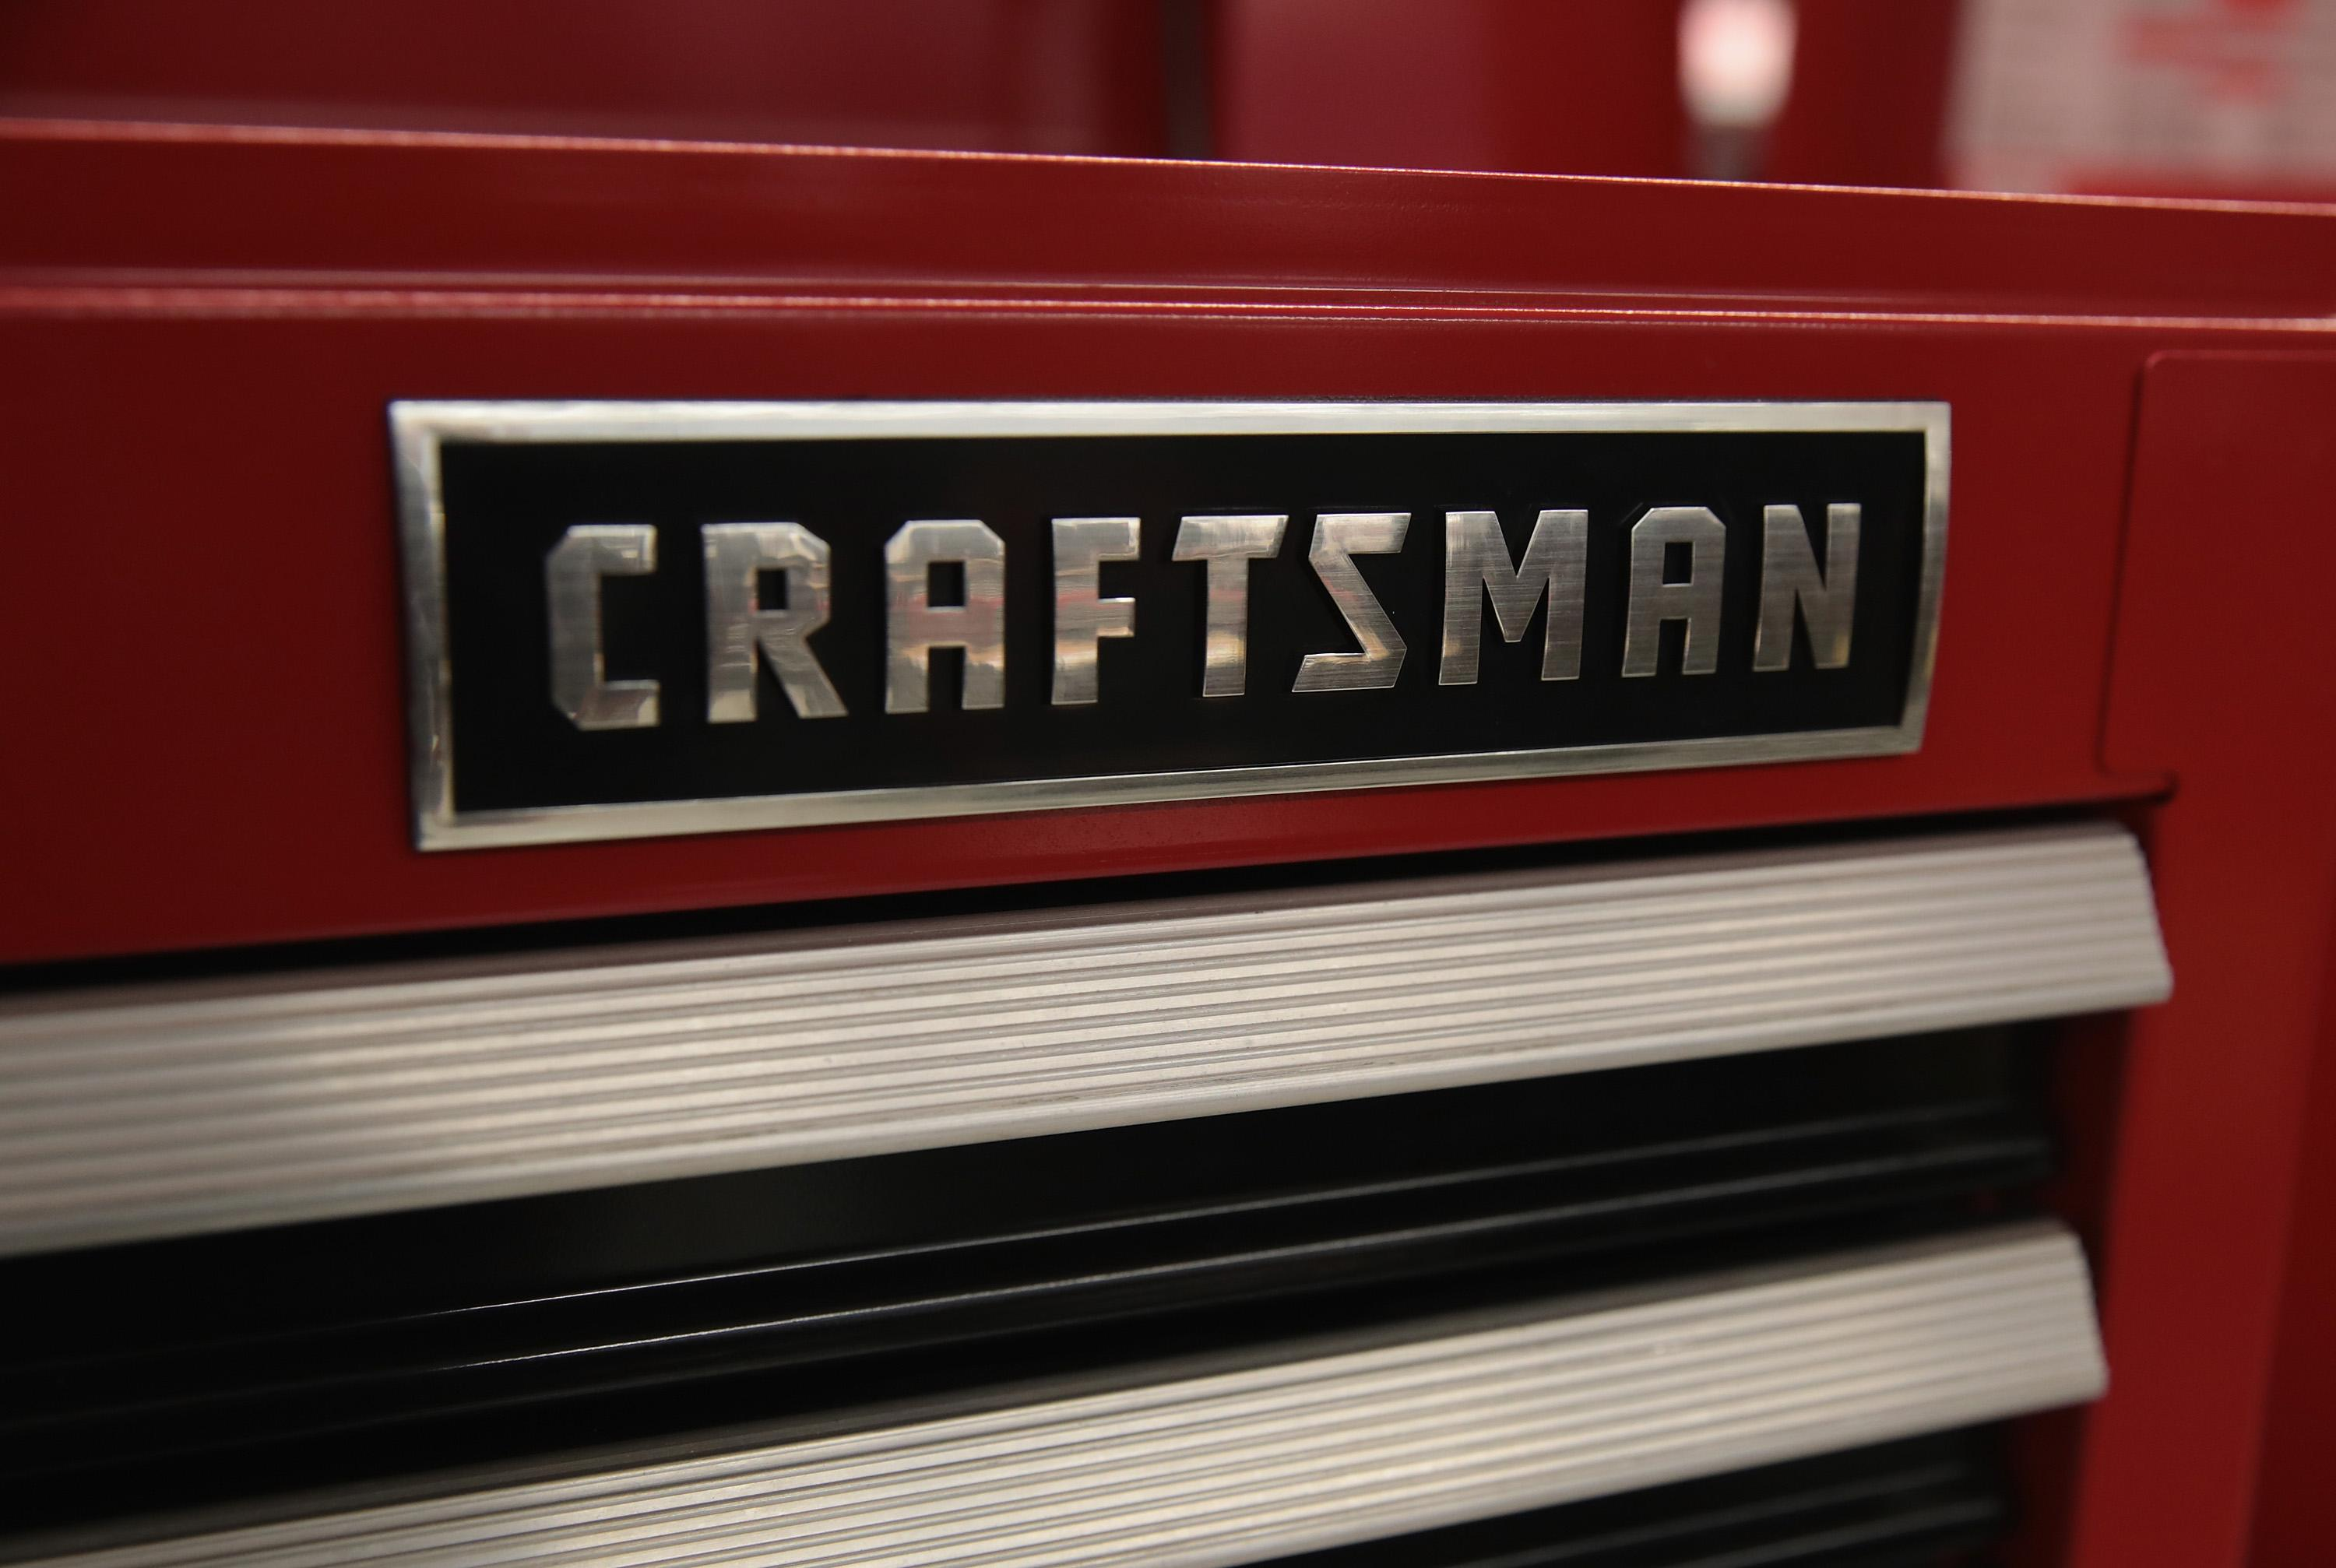 Are Craftsman Tools Made In America